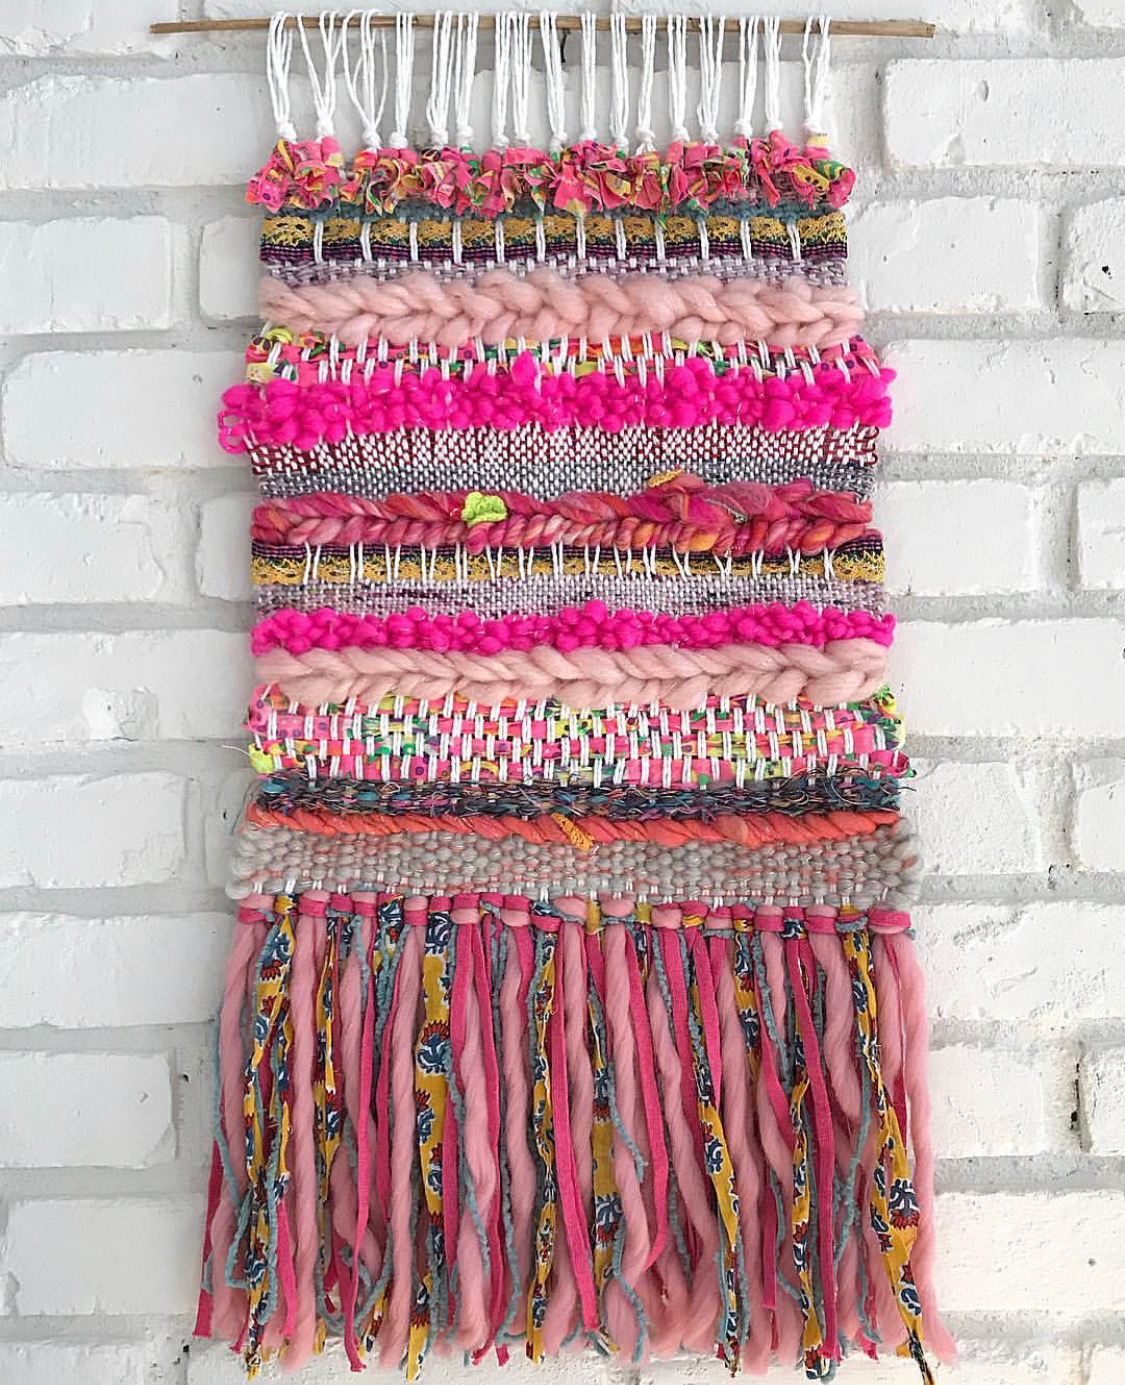 Pink woven tapestry made out of wool and cotton